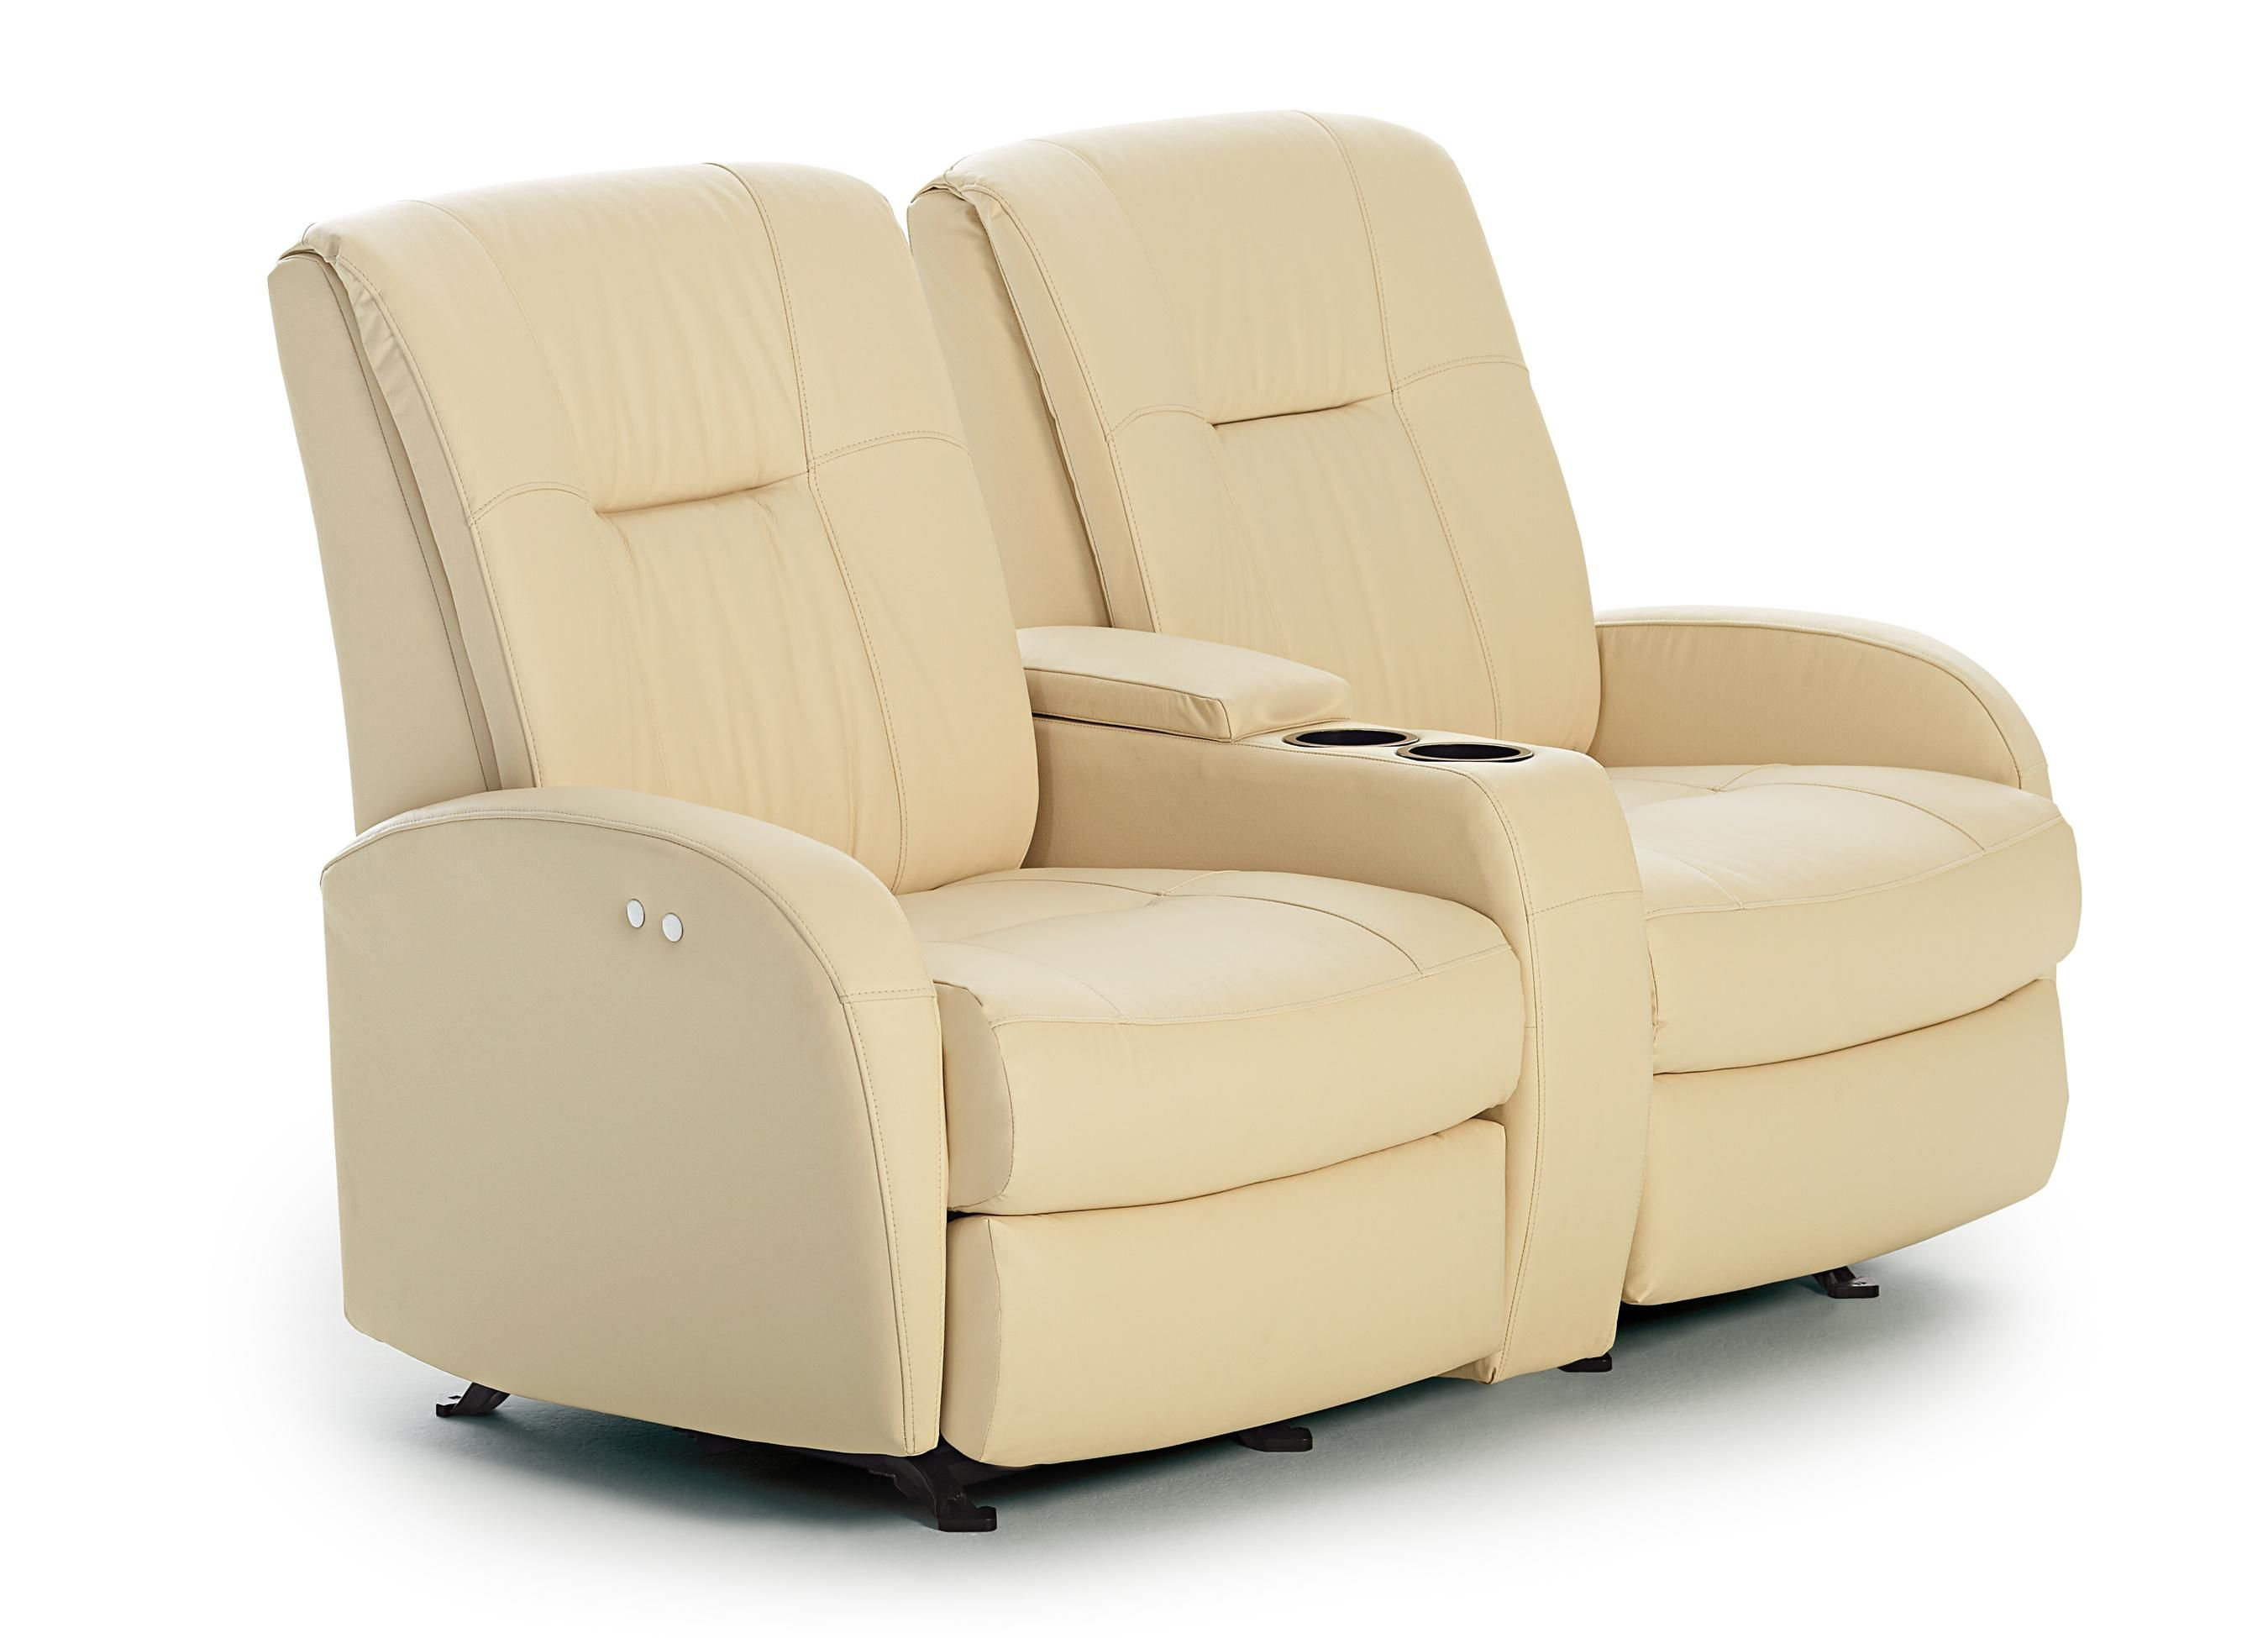 Contemporary Rocker Recliner Console Loveseat with Drink Console  sc 1 st  Pinterest & Remarkable Reclining Loveseat With Console: Ruddick Contemporary ... islam-shia.org